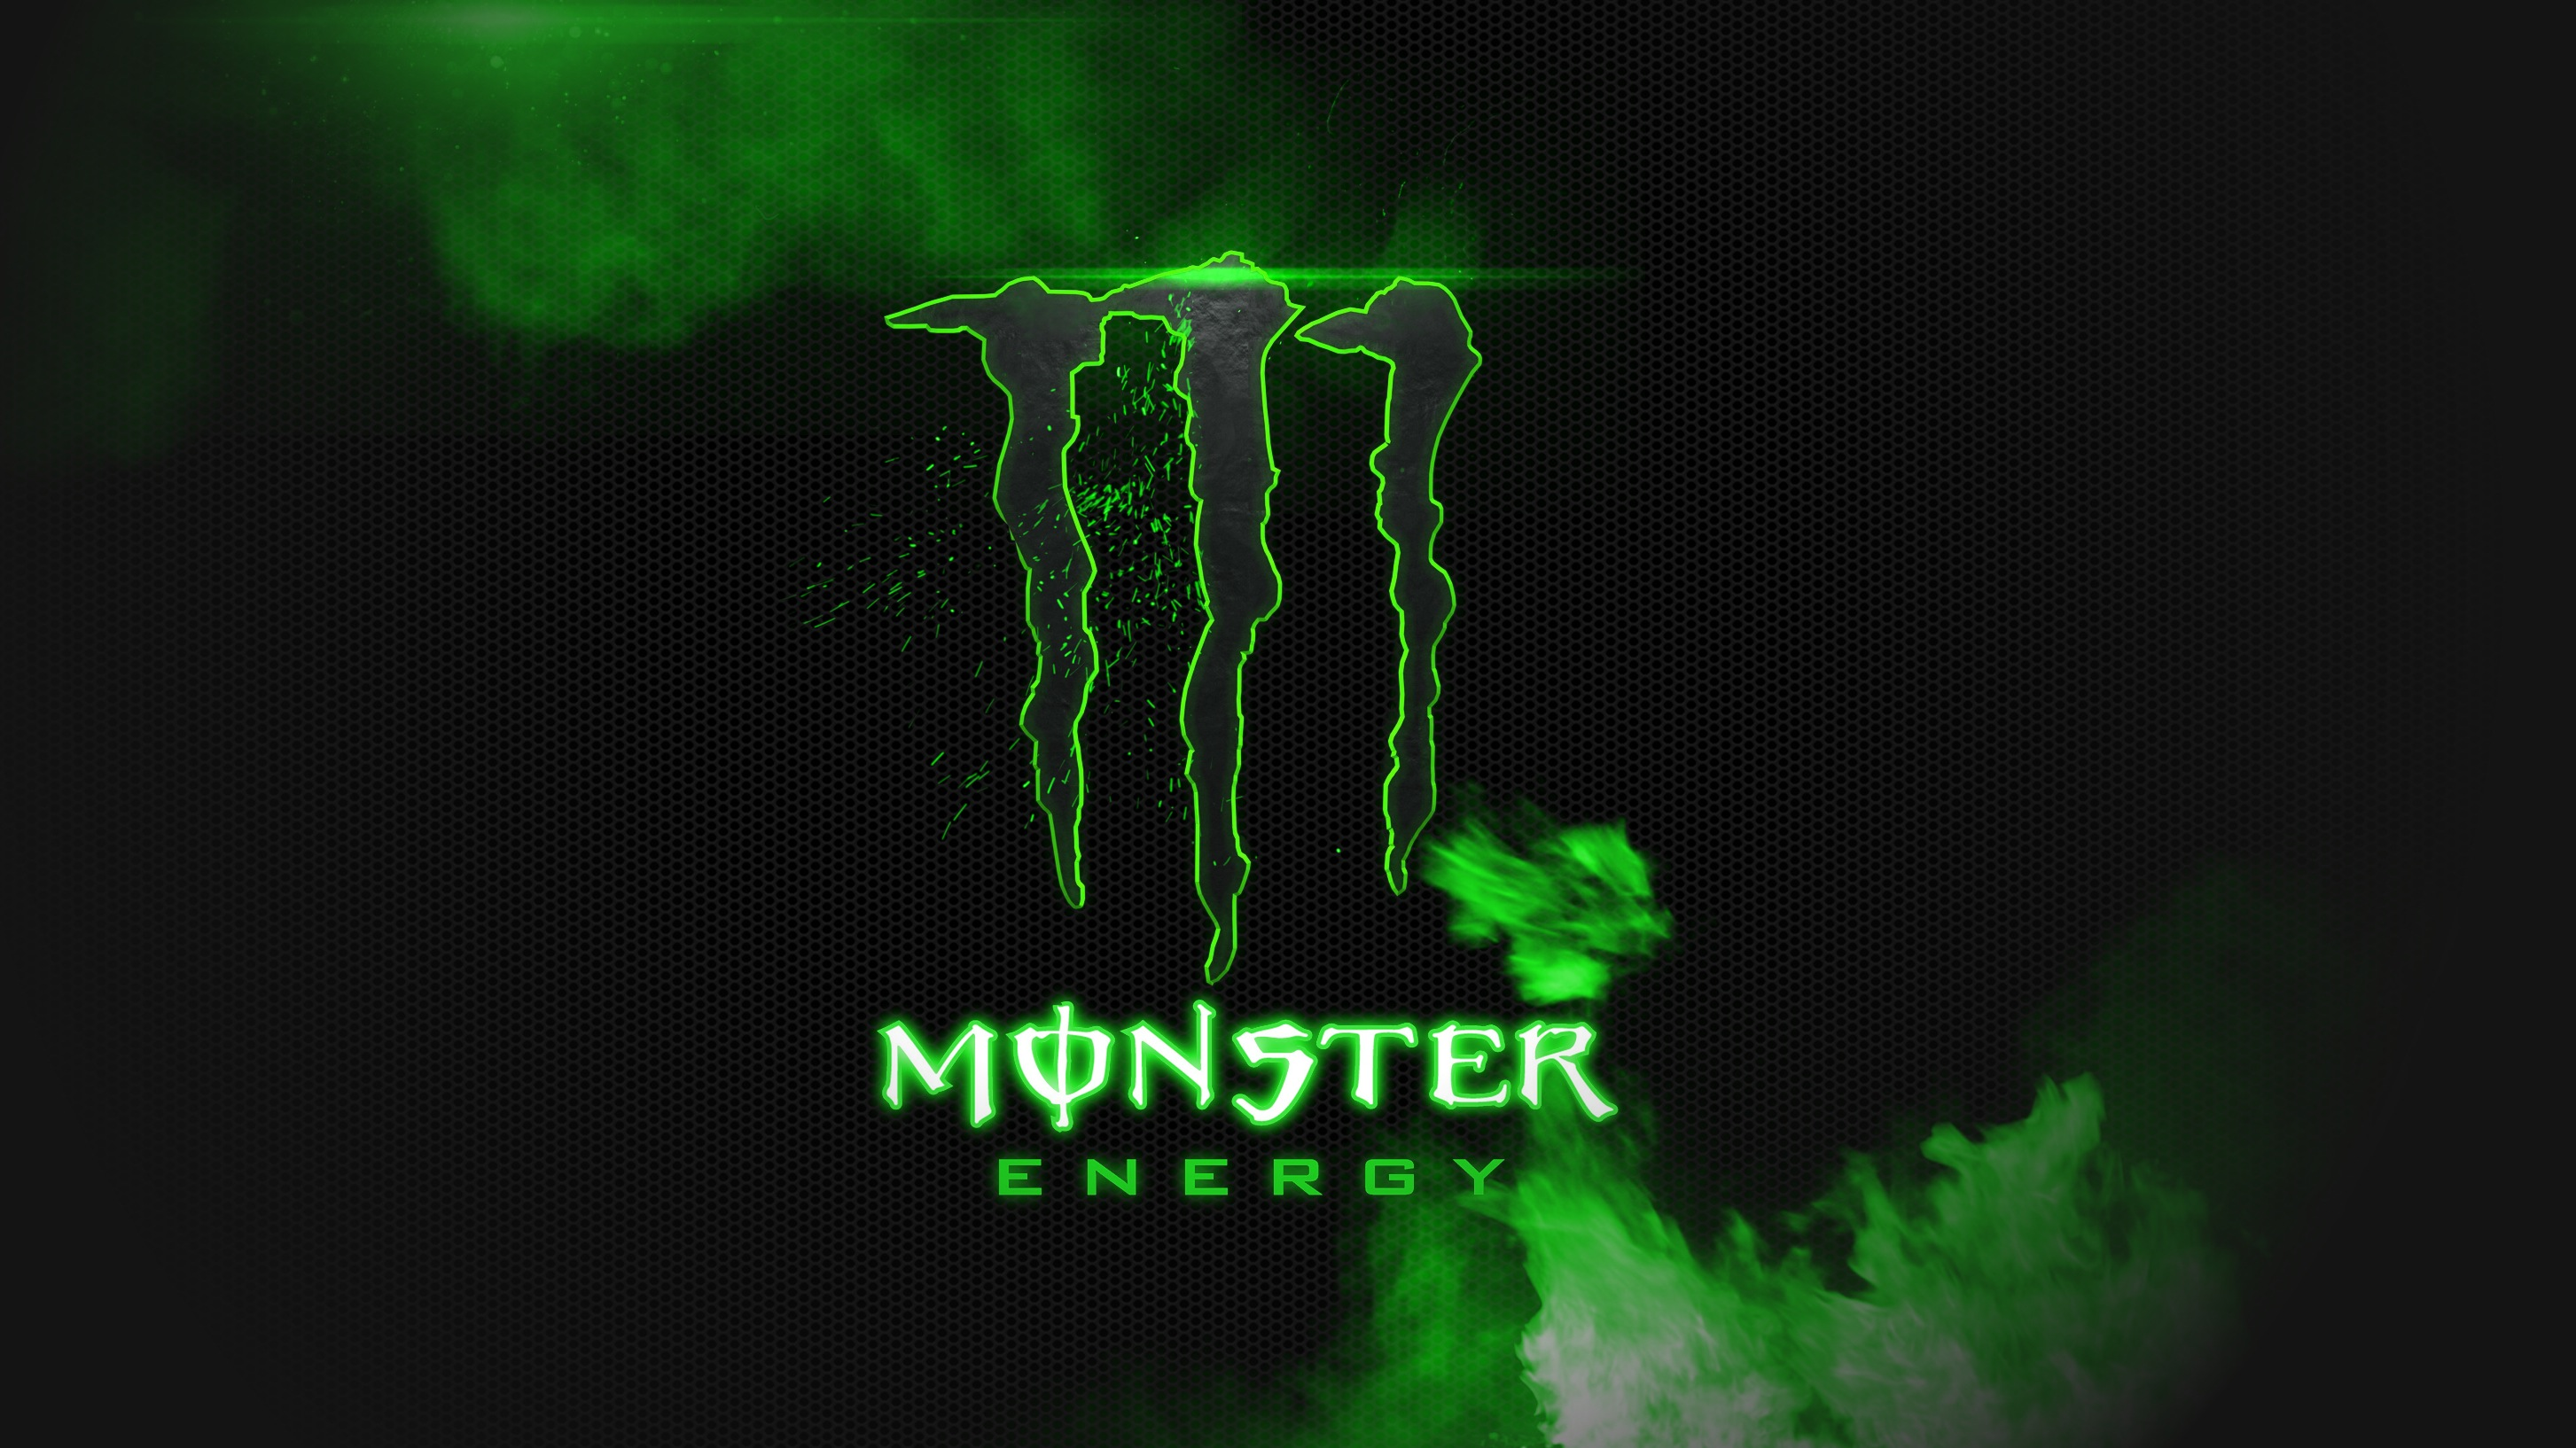 desktop monster energy hd wallpaper | pixelstalk